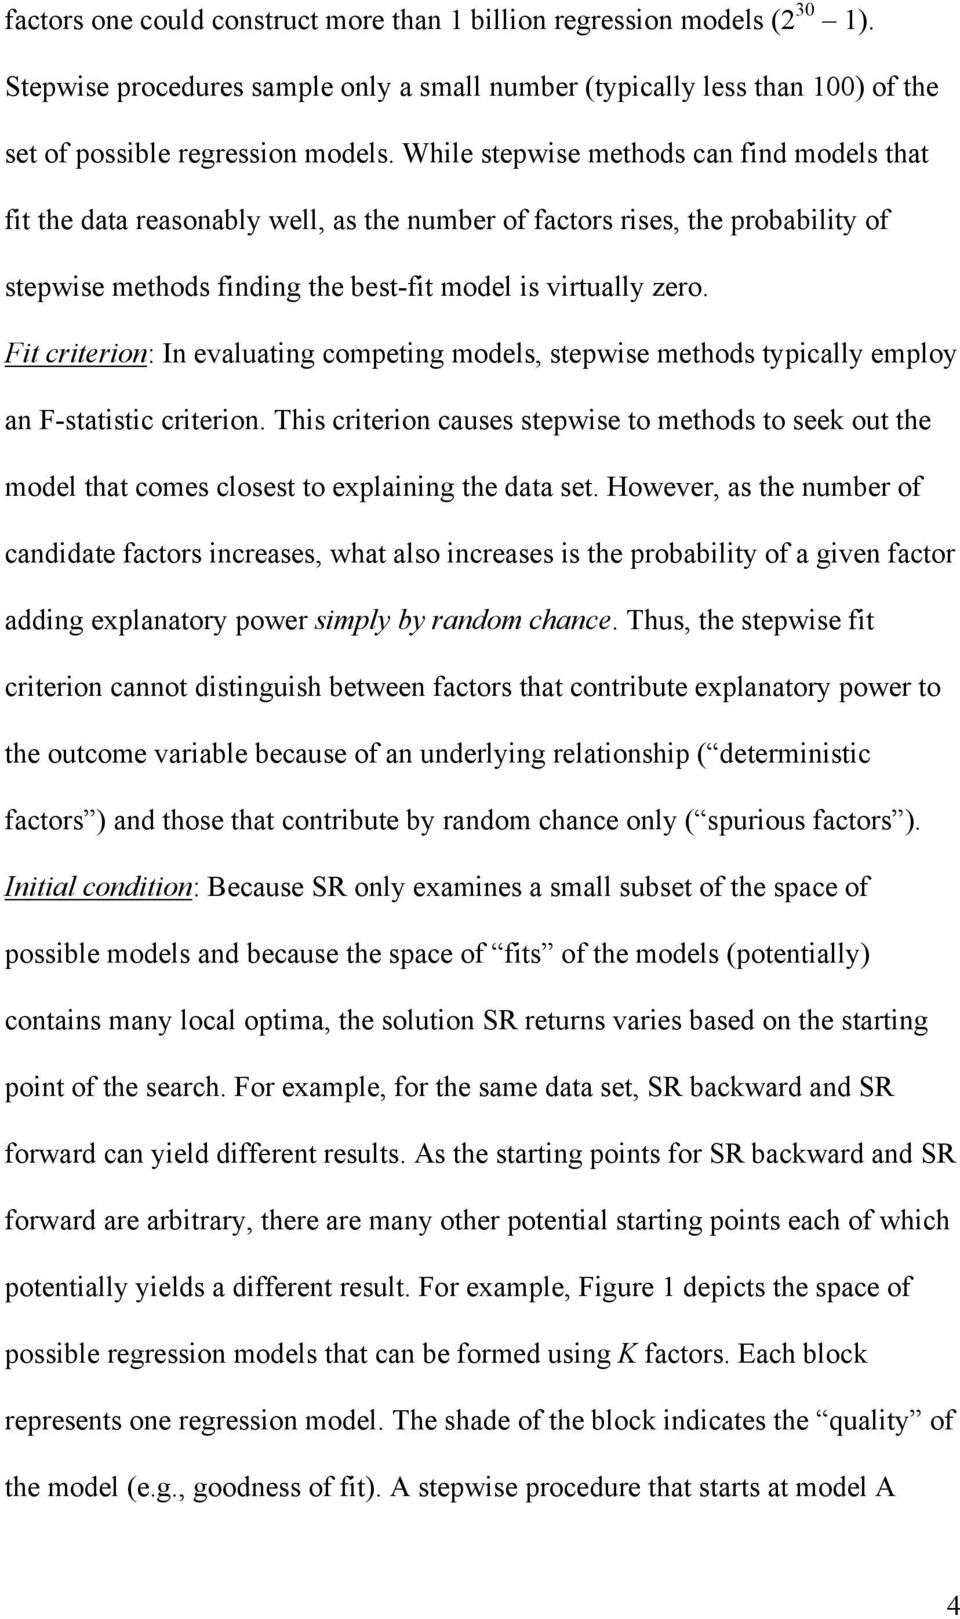 Ft crteron: In evaluatng competng models, stepwse methods typcally employ an F-statstc crteron. Ths crteron causes stepwse to methods to seek out the model that comes closest to explanng the data set.